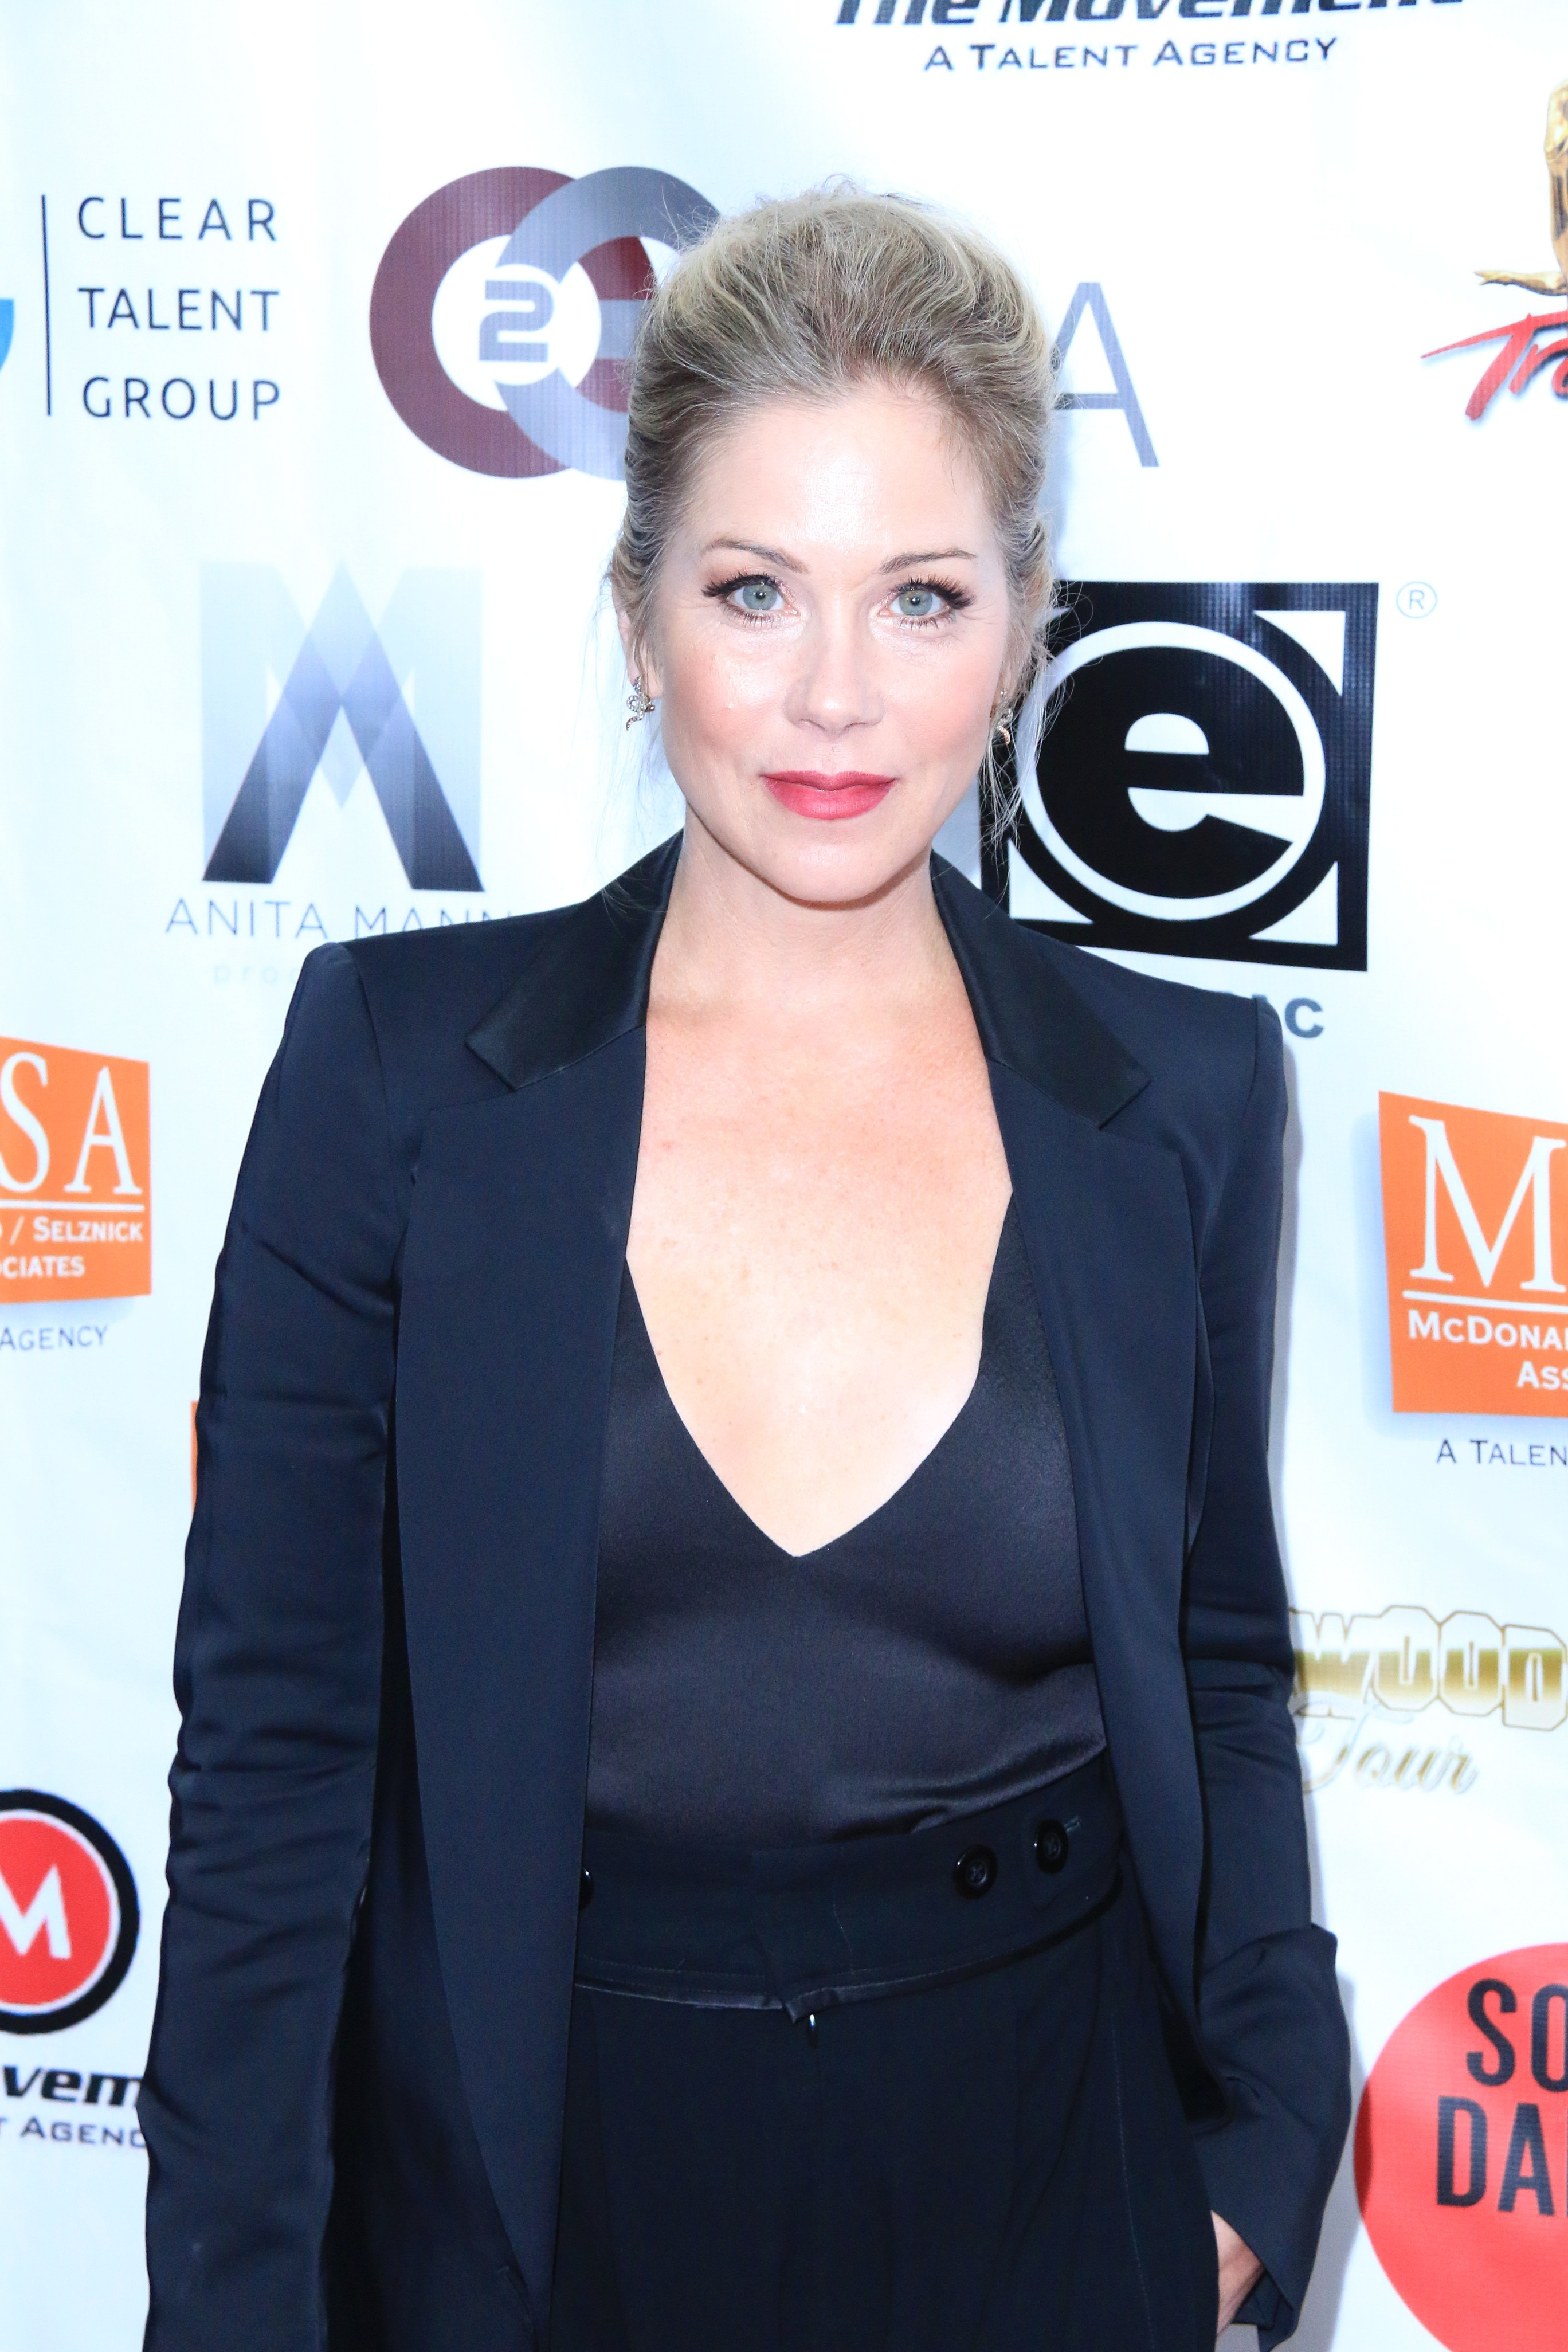 Christina Applegate attends the 2016 World Choreography Awards in Los Angeles on Oct. 24, 2016.